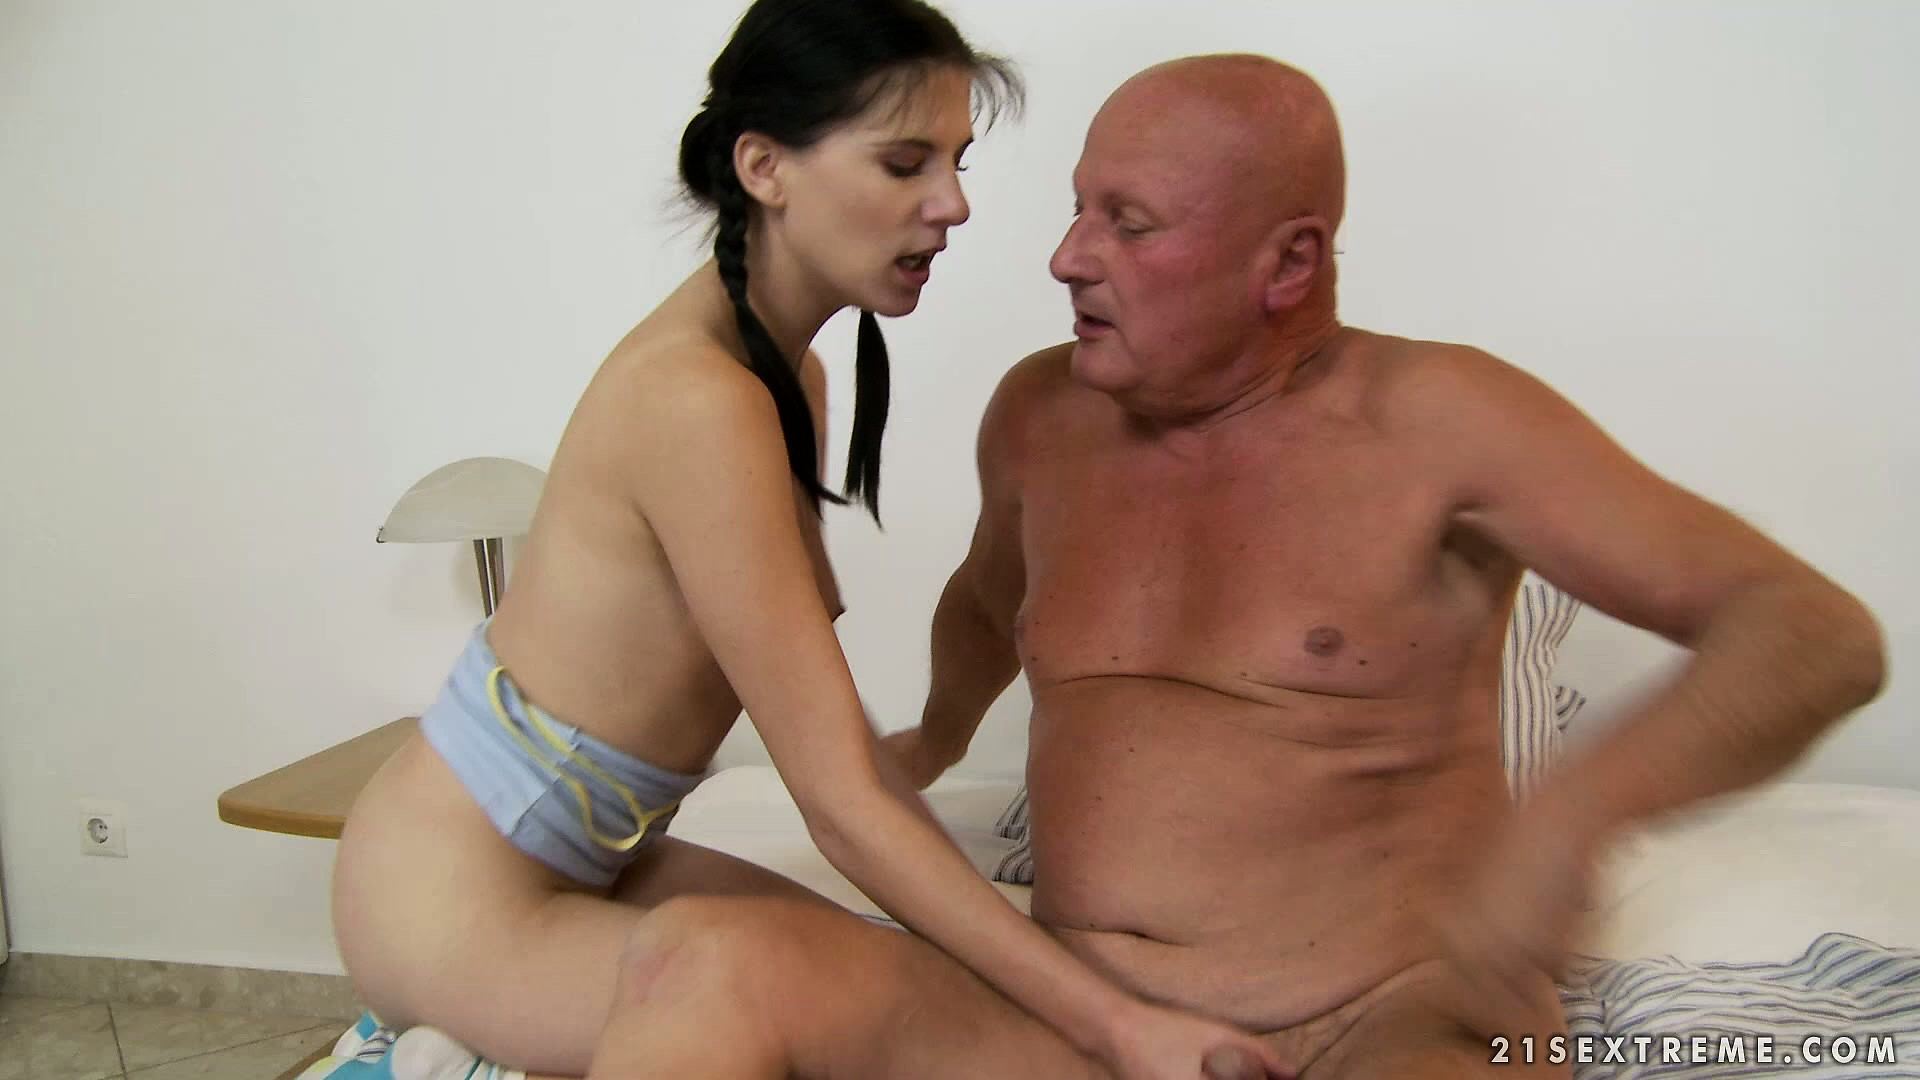 Porno Video of Naughty Young Brunette In Pigtails Sucks And Fucks Bald Old Man